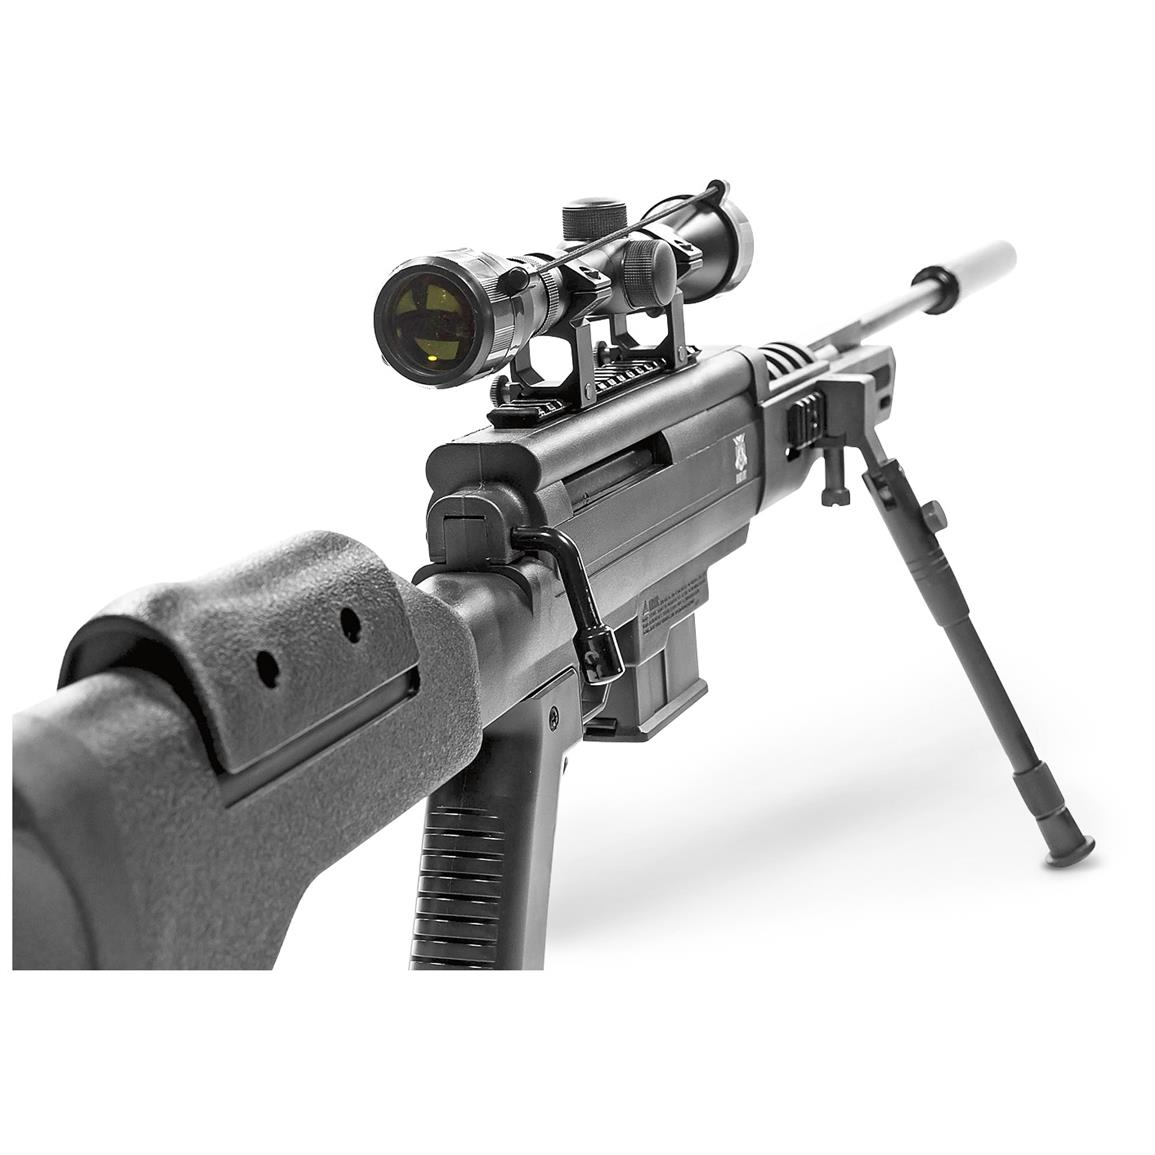 Weaver / Picatinny rail for adding optics